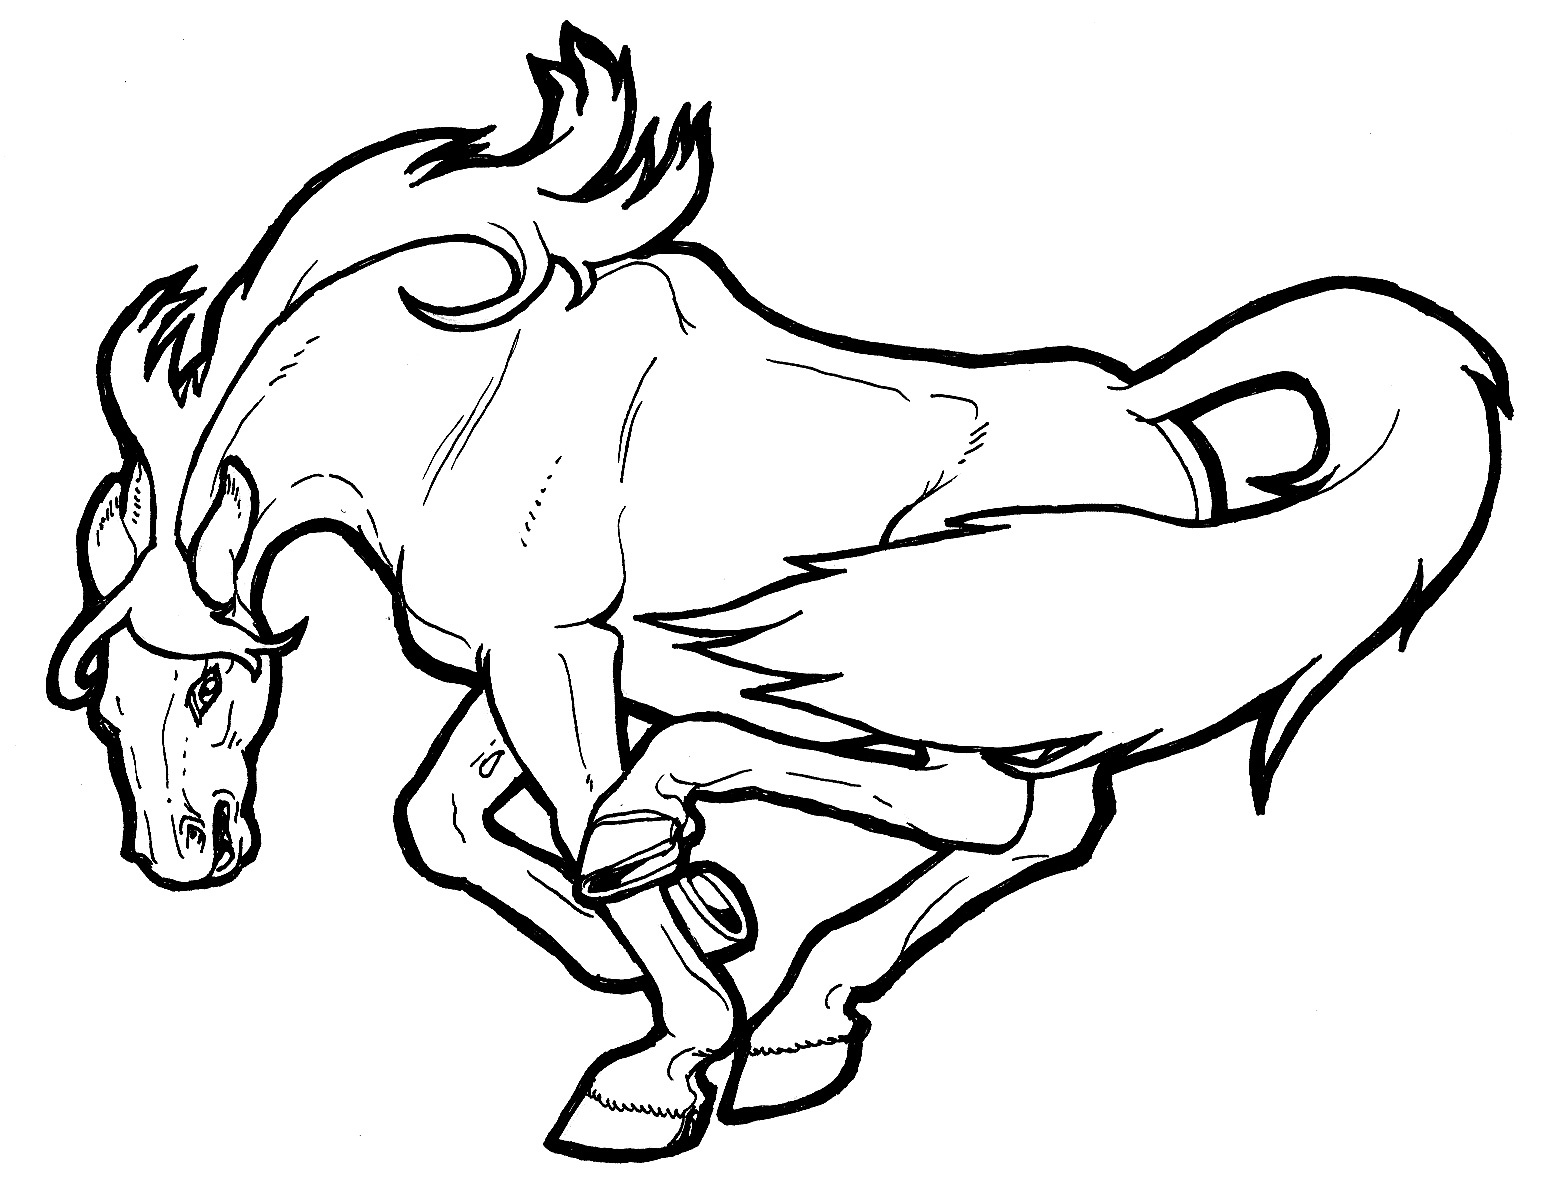 horse coloring book pages horses coloring pages download and print horses coloring book pages horse coloring